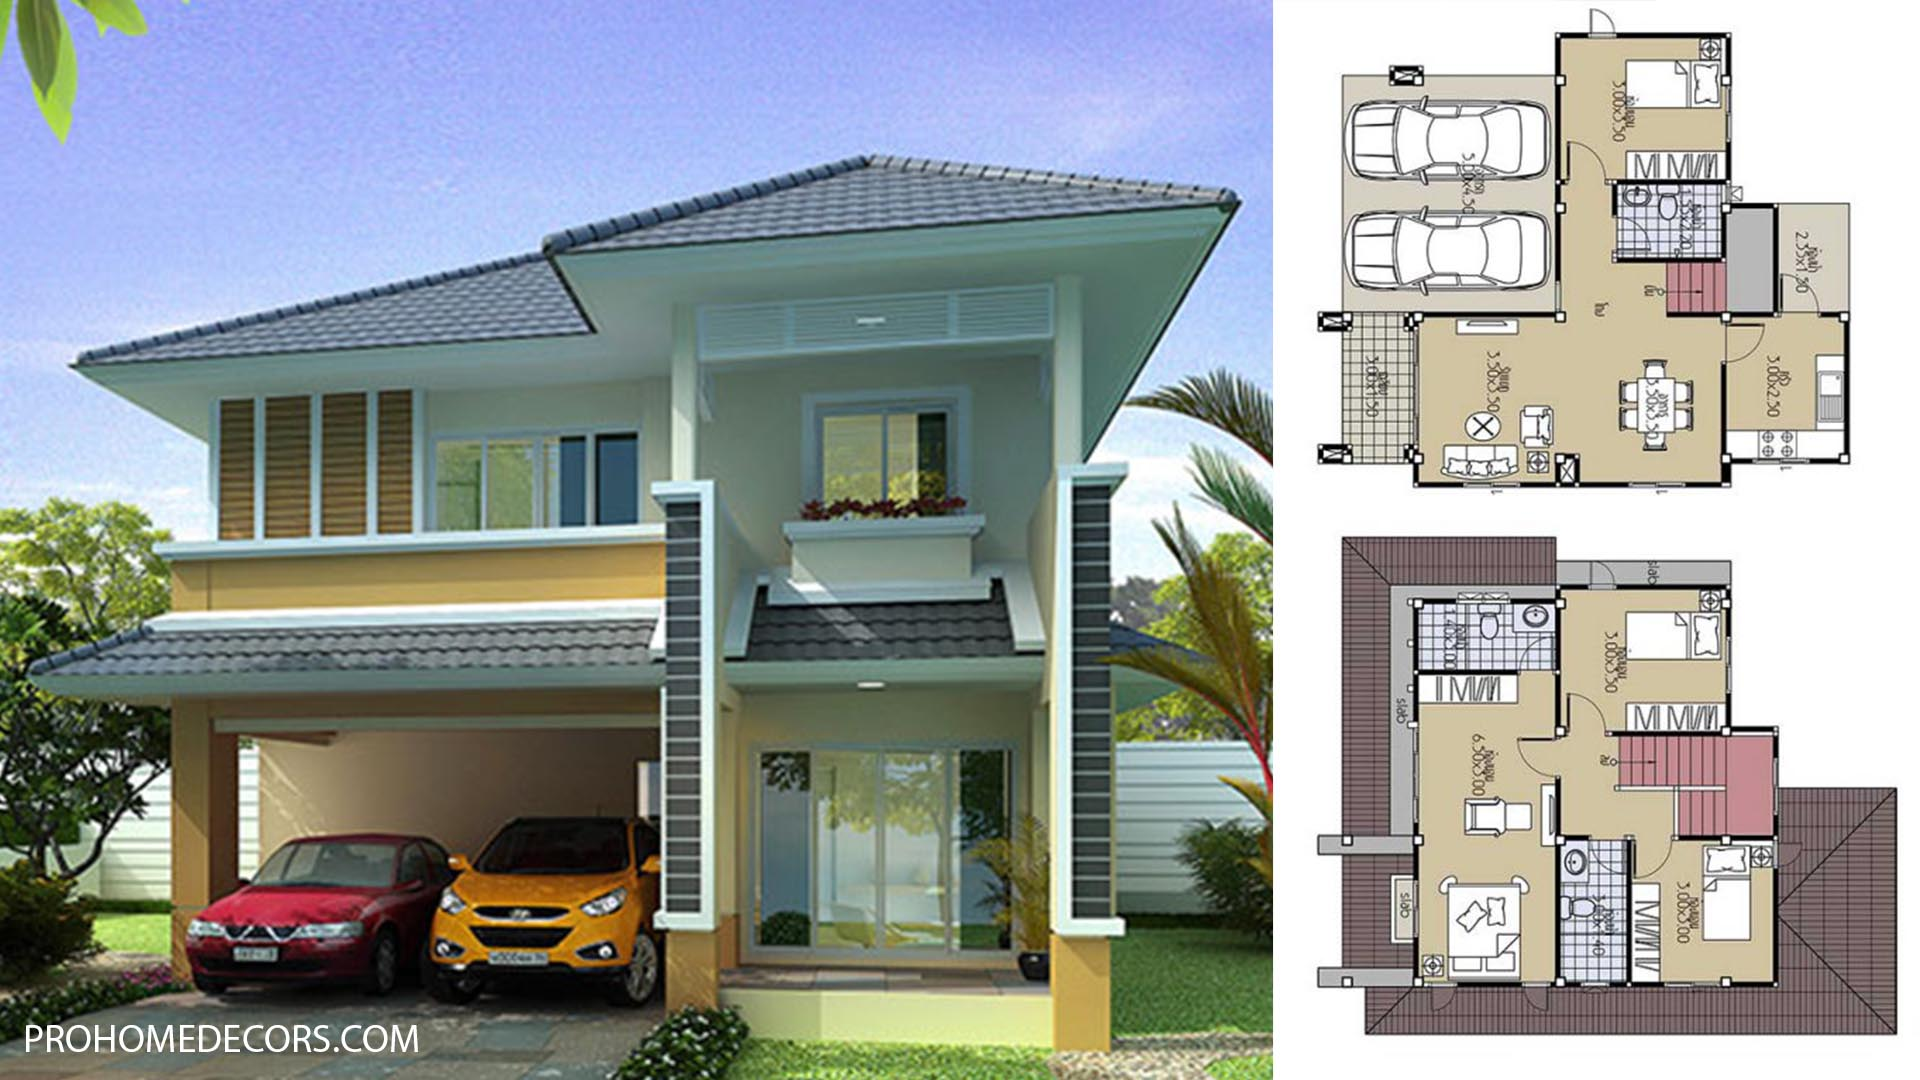 House Plans 8×10.5 with 4 Beds